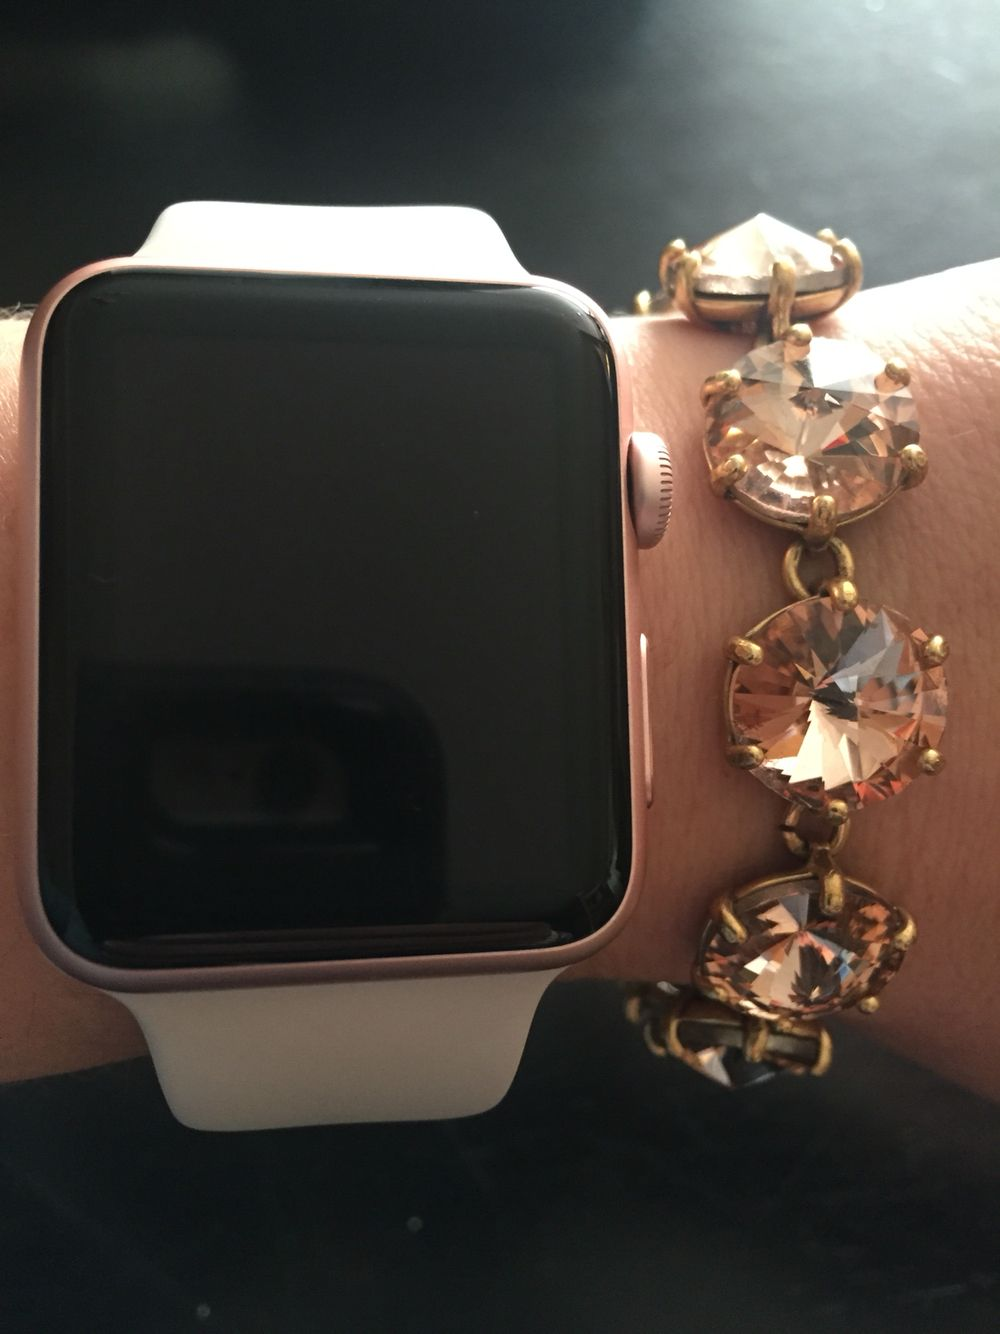 instructions to change bands on apple watch 42mm